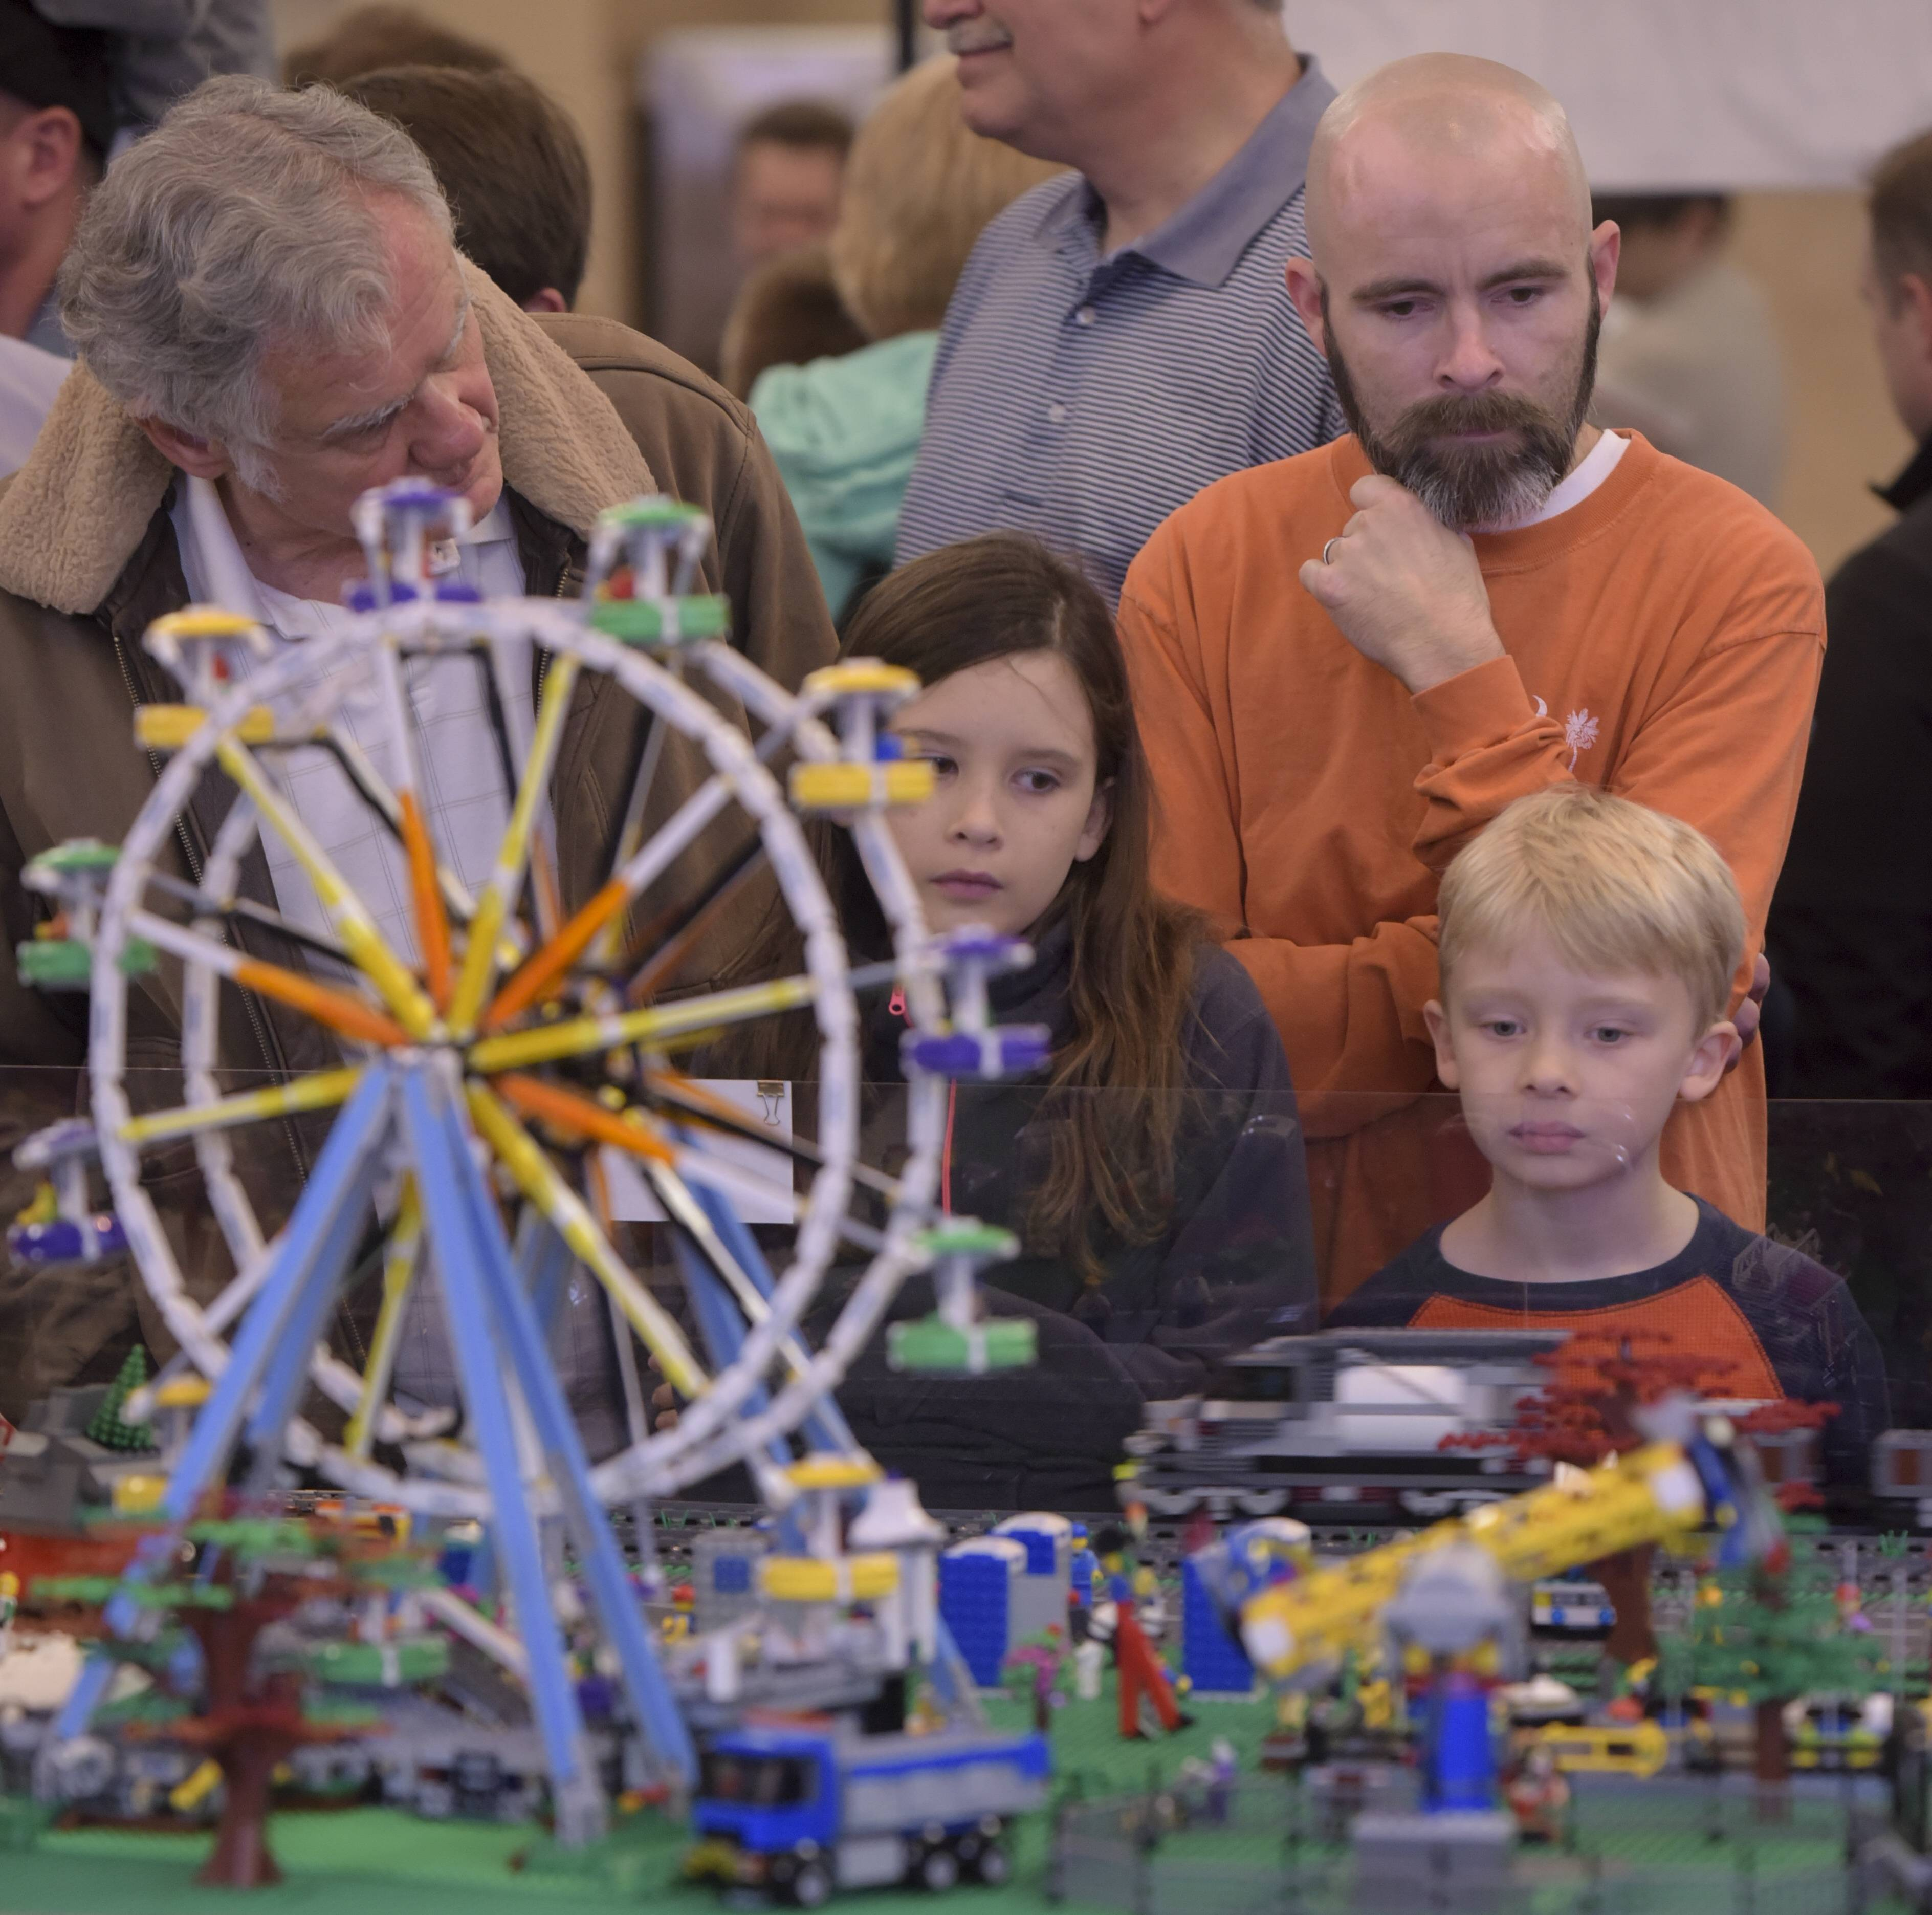 Jeremy Huggin and his children, Grace, 10, and Ben, 7, of Batavia check out a Lego creation Sunday at the 14th annual Lego Train Show at Cantigny Park.